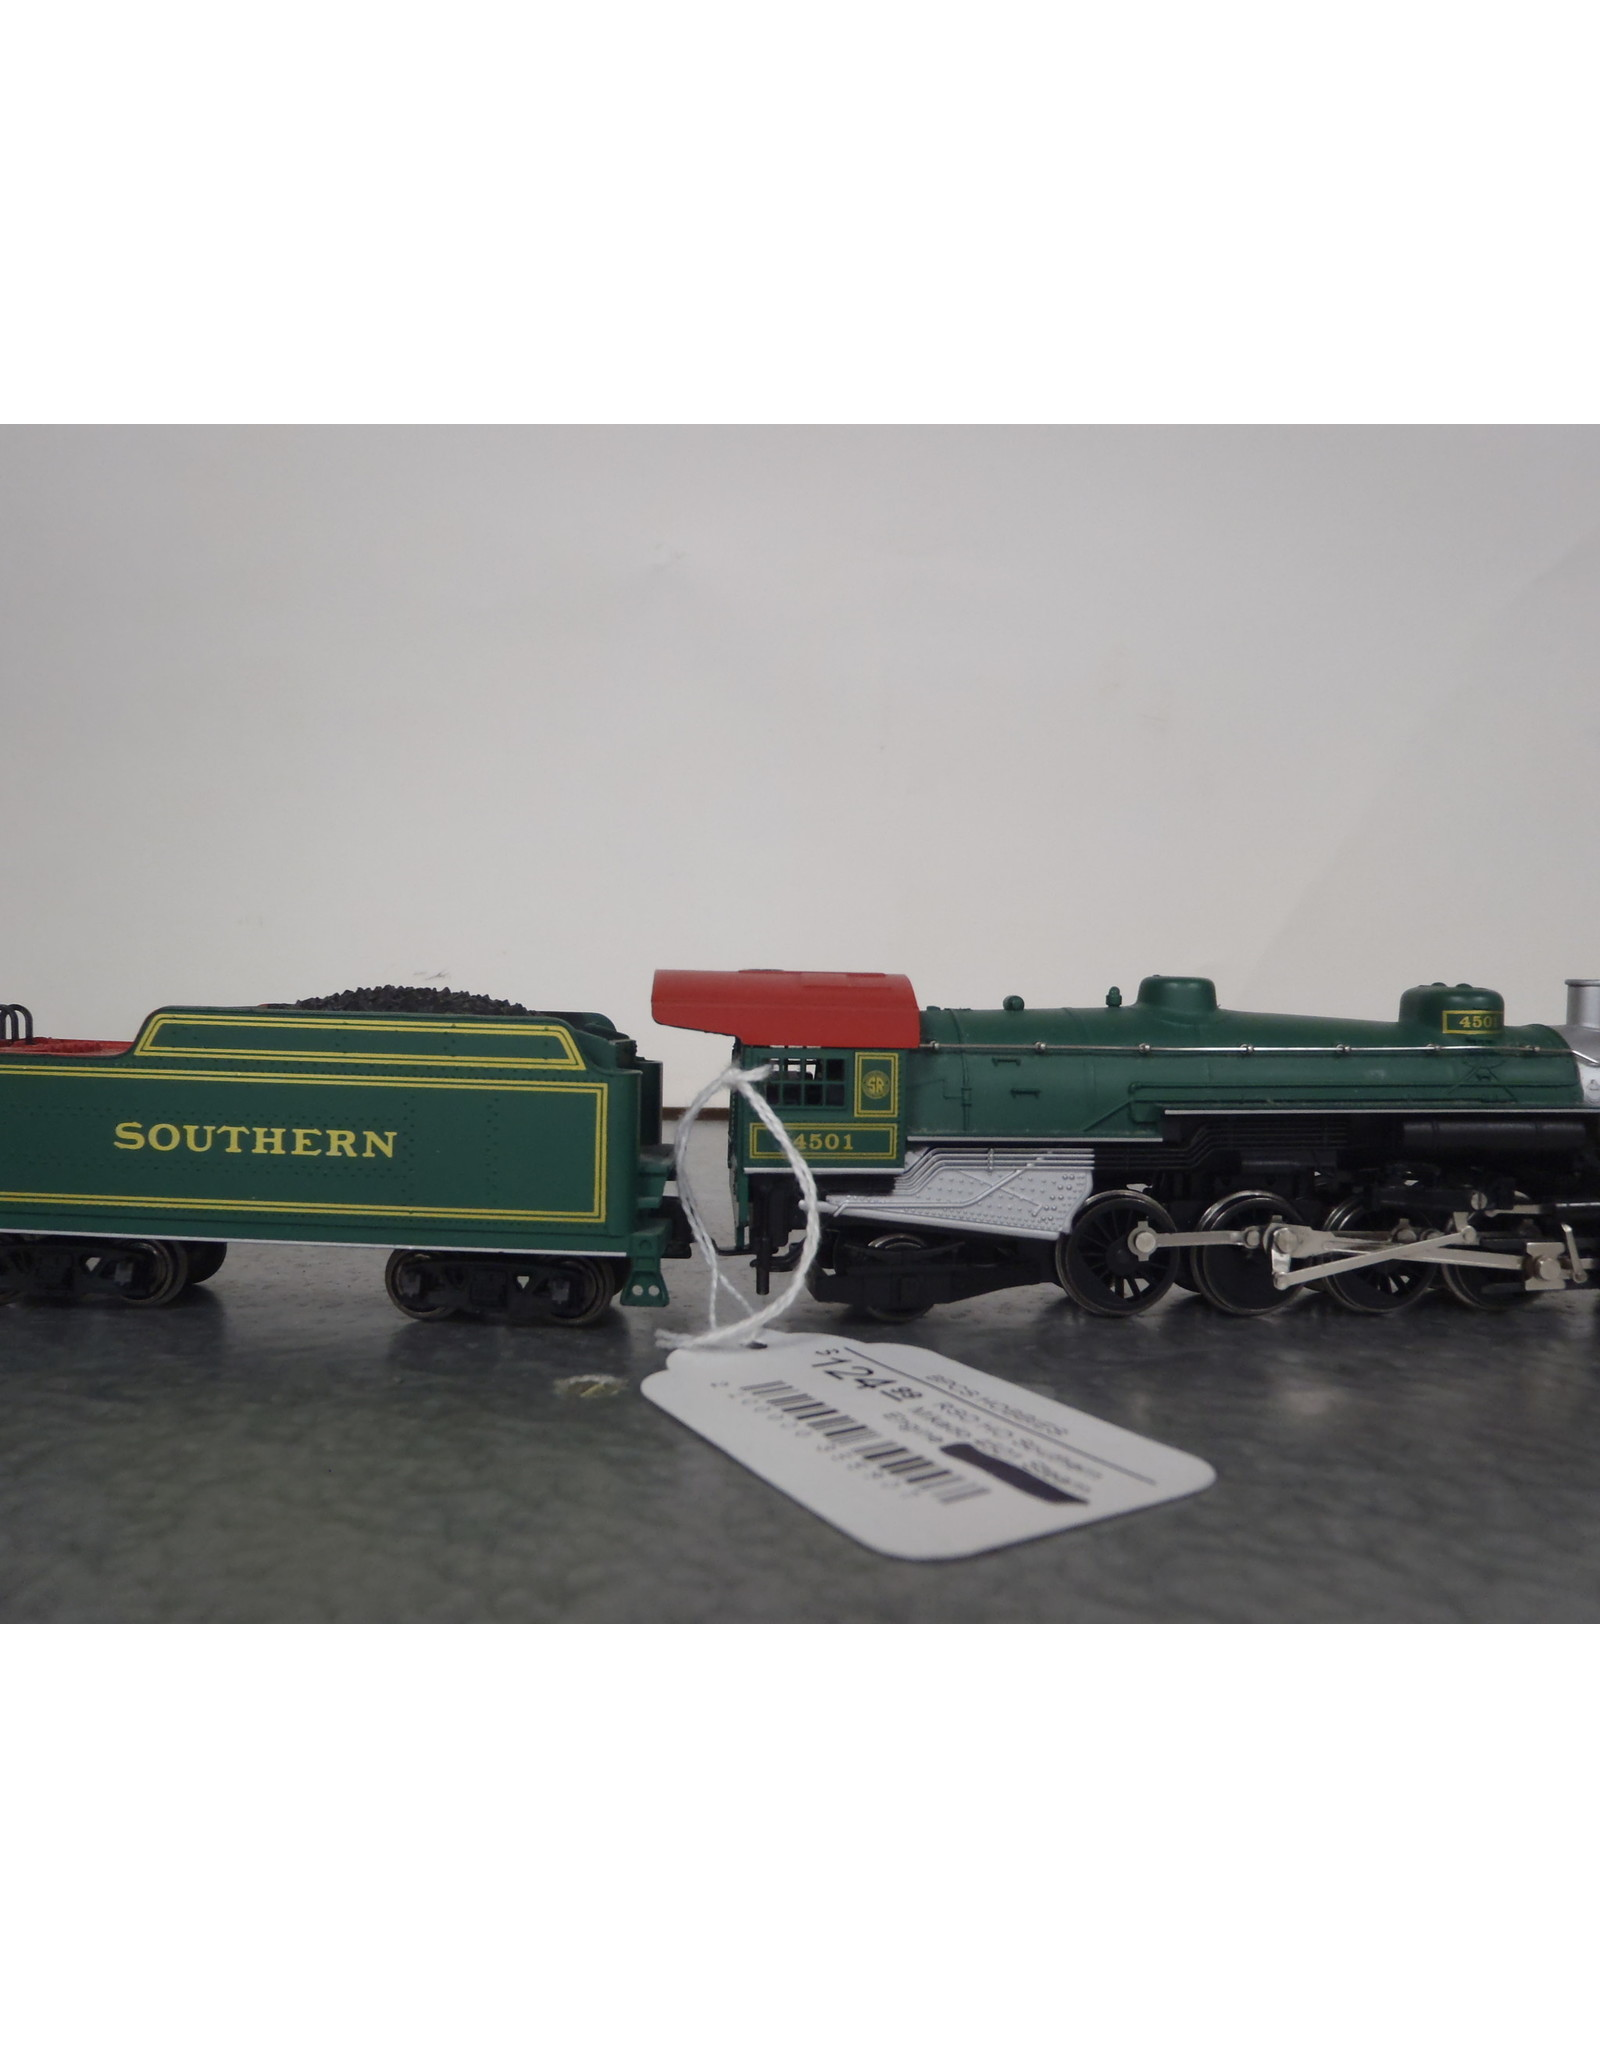 RSO HO Southern Mikado 4501 Steam Engine UNTESTED Vintage Yugoslavia